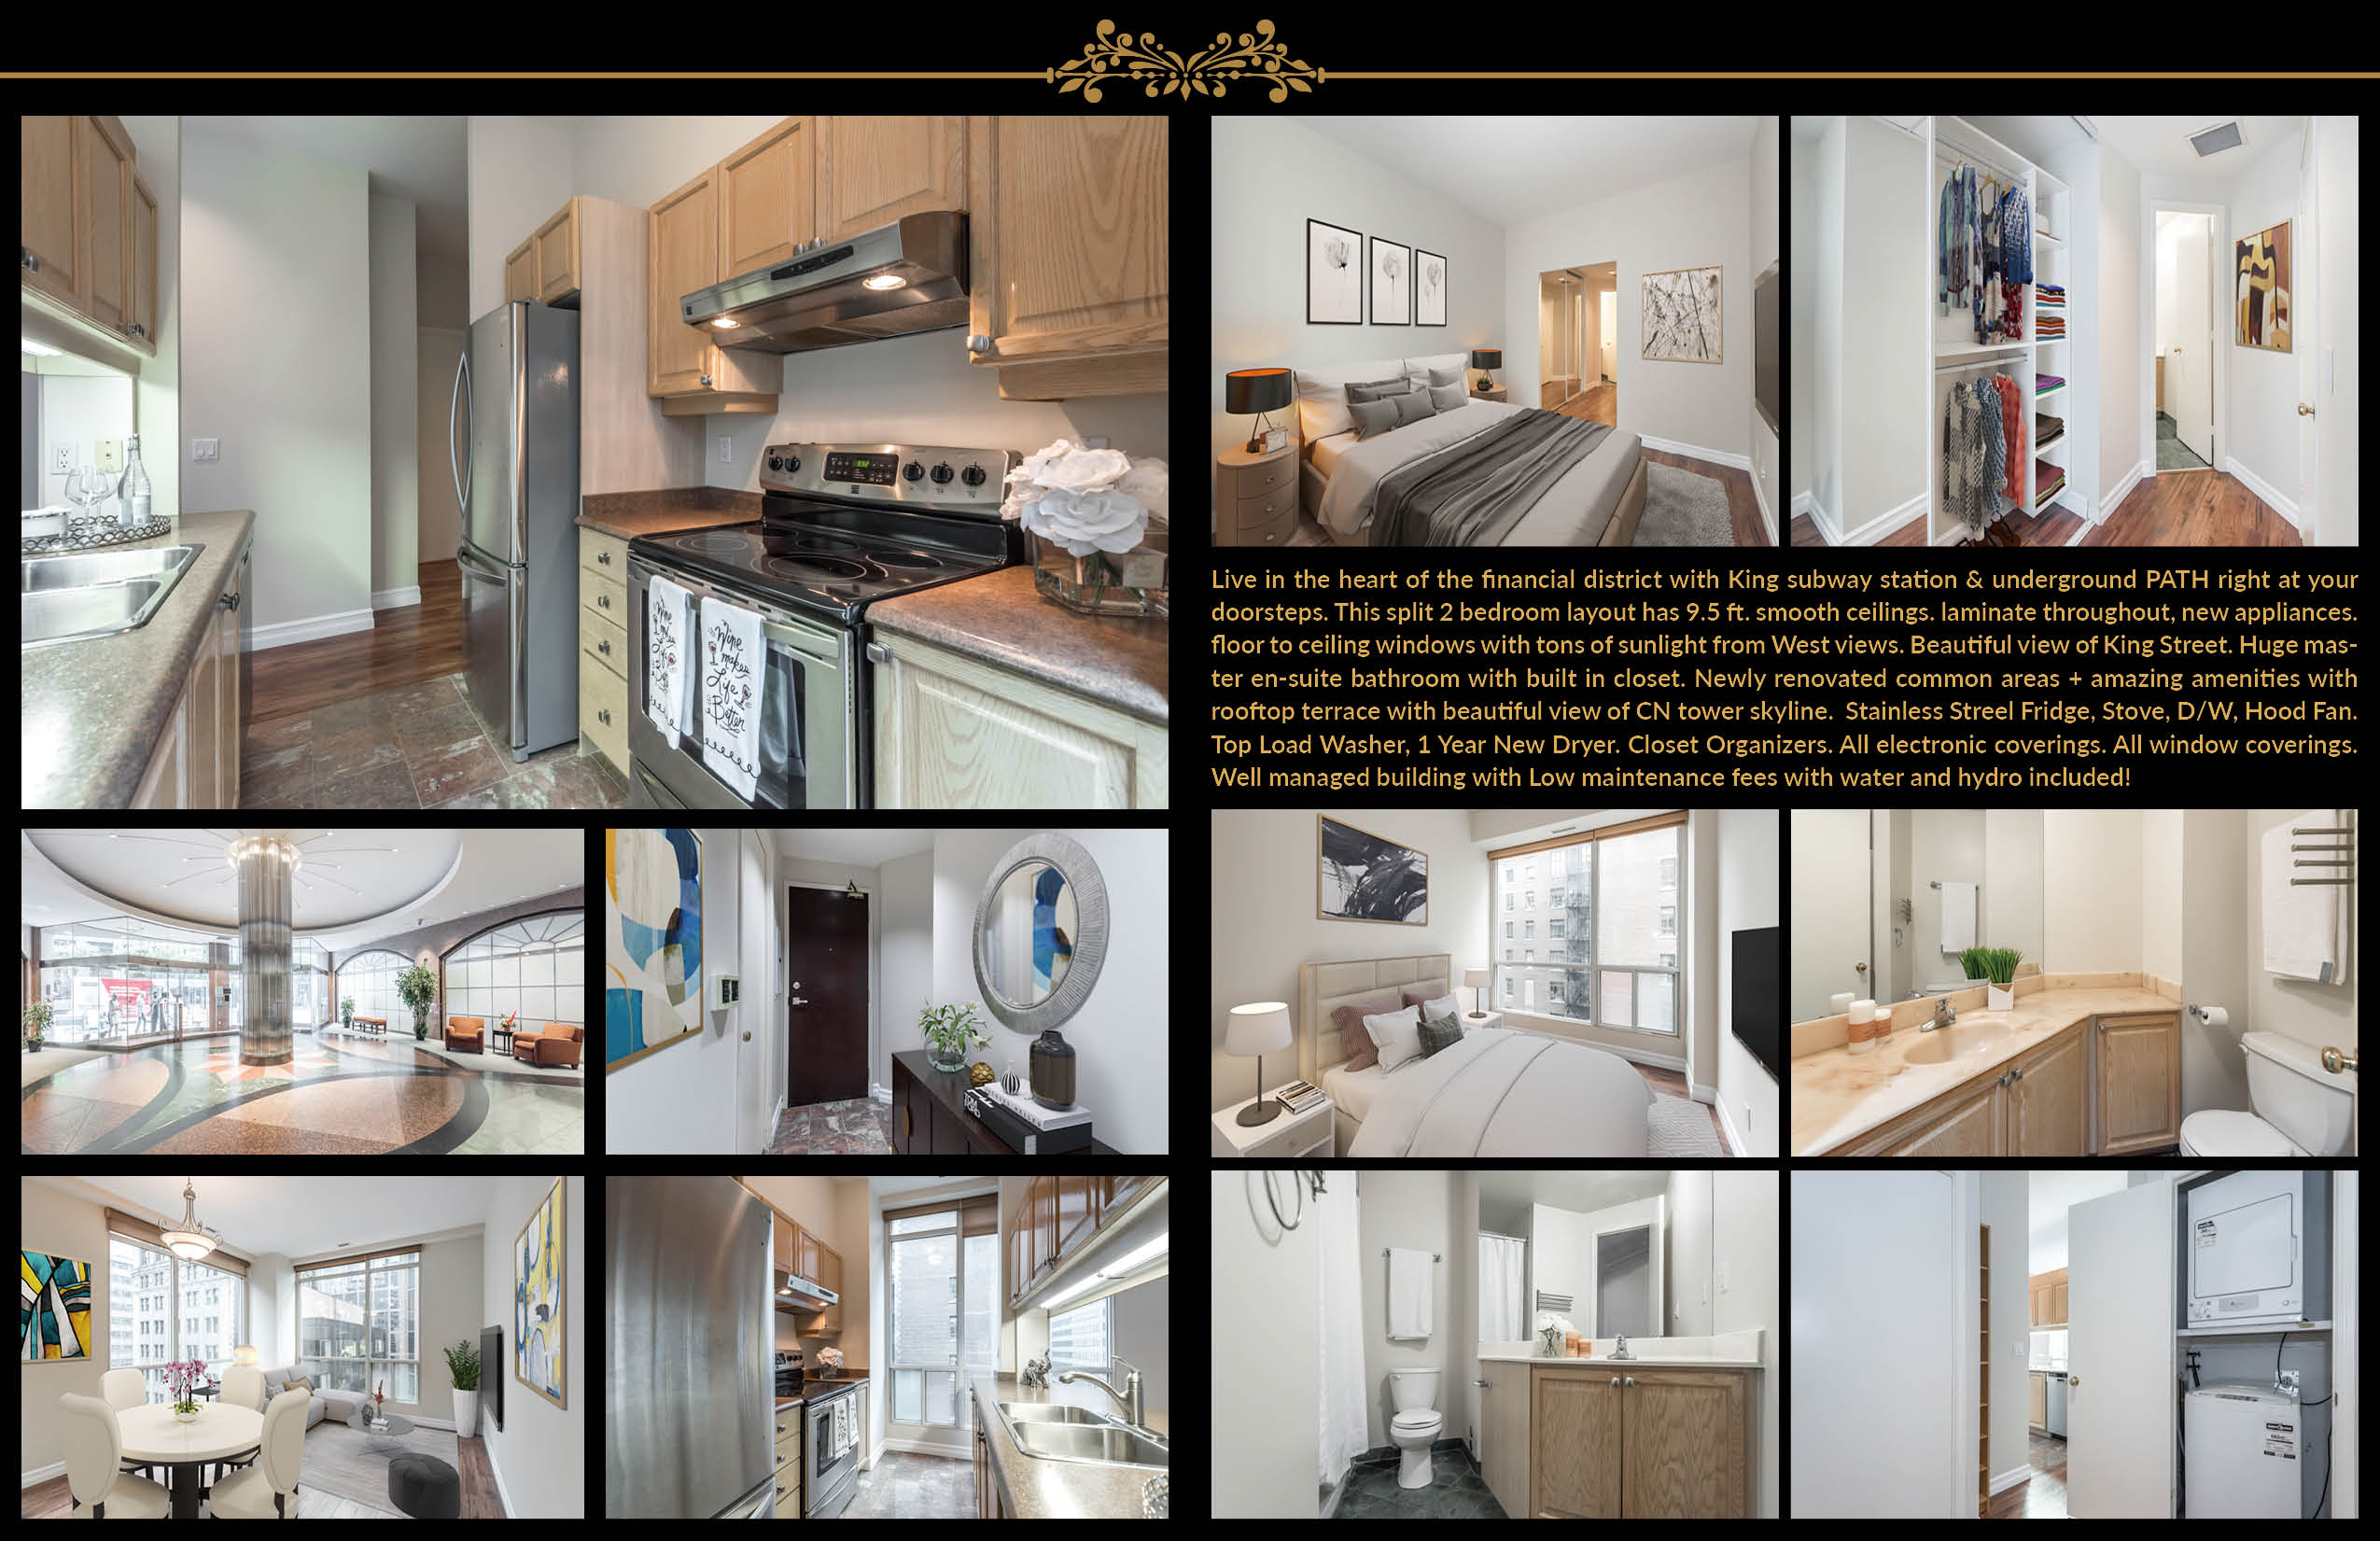 This is a mix of pictures showing the kitchen and bedroom and bathroom and so much more.